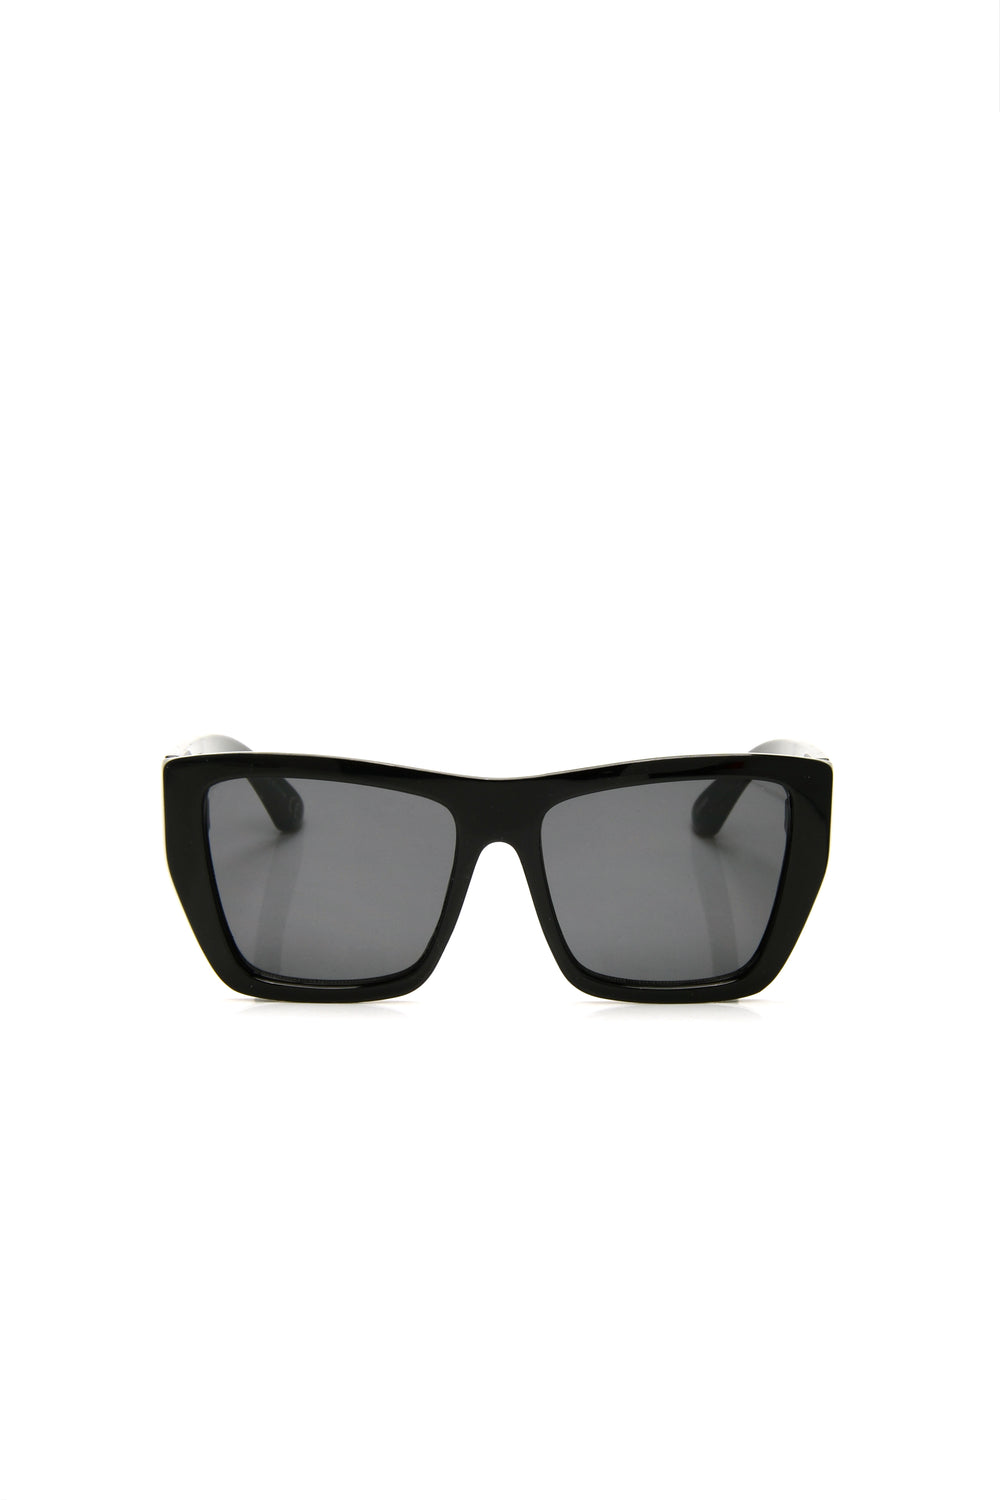 Gotta Run Sunglasses - Black